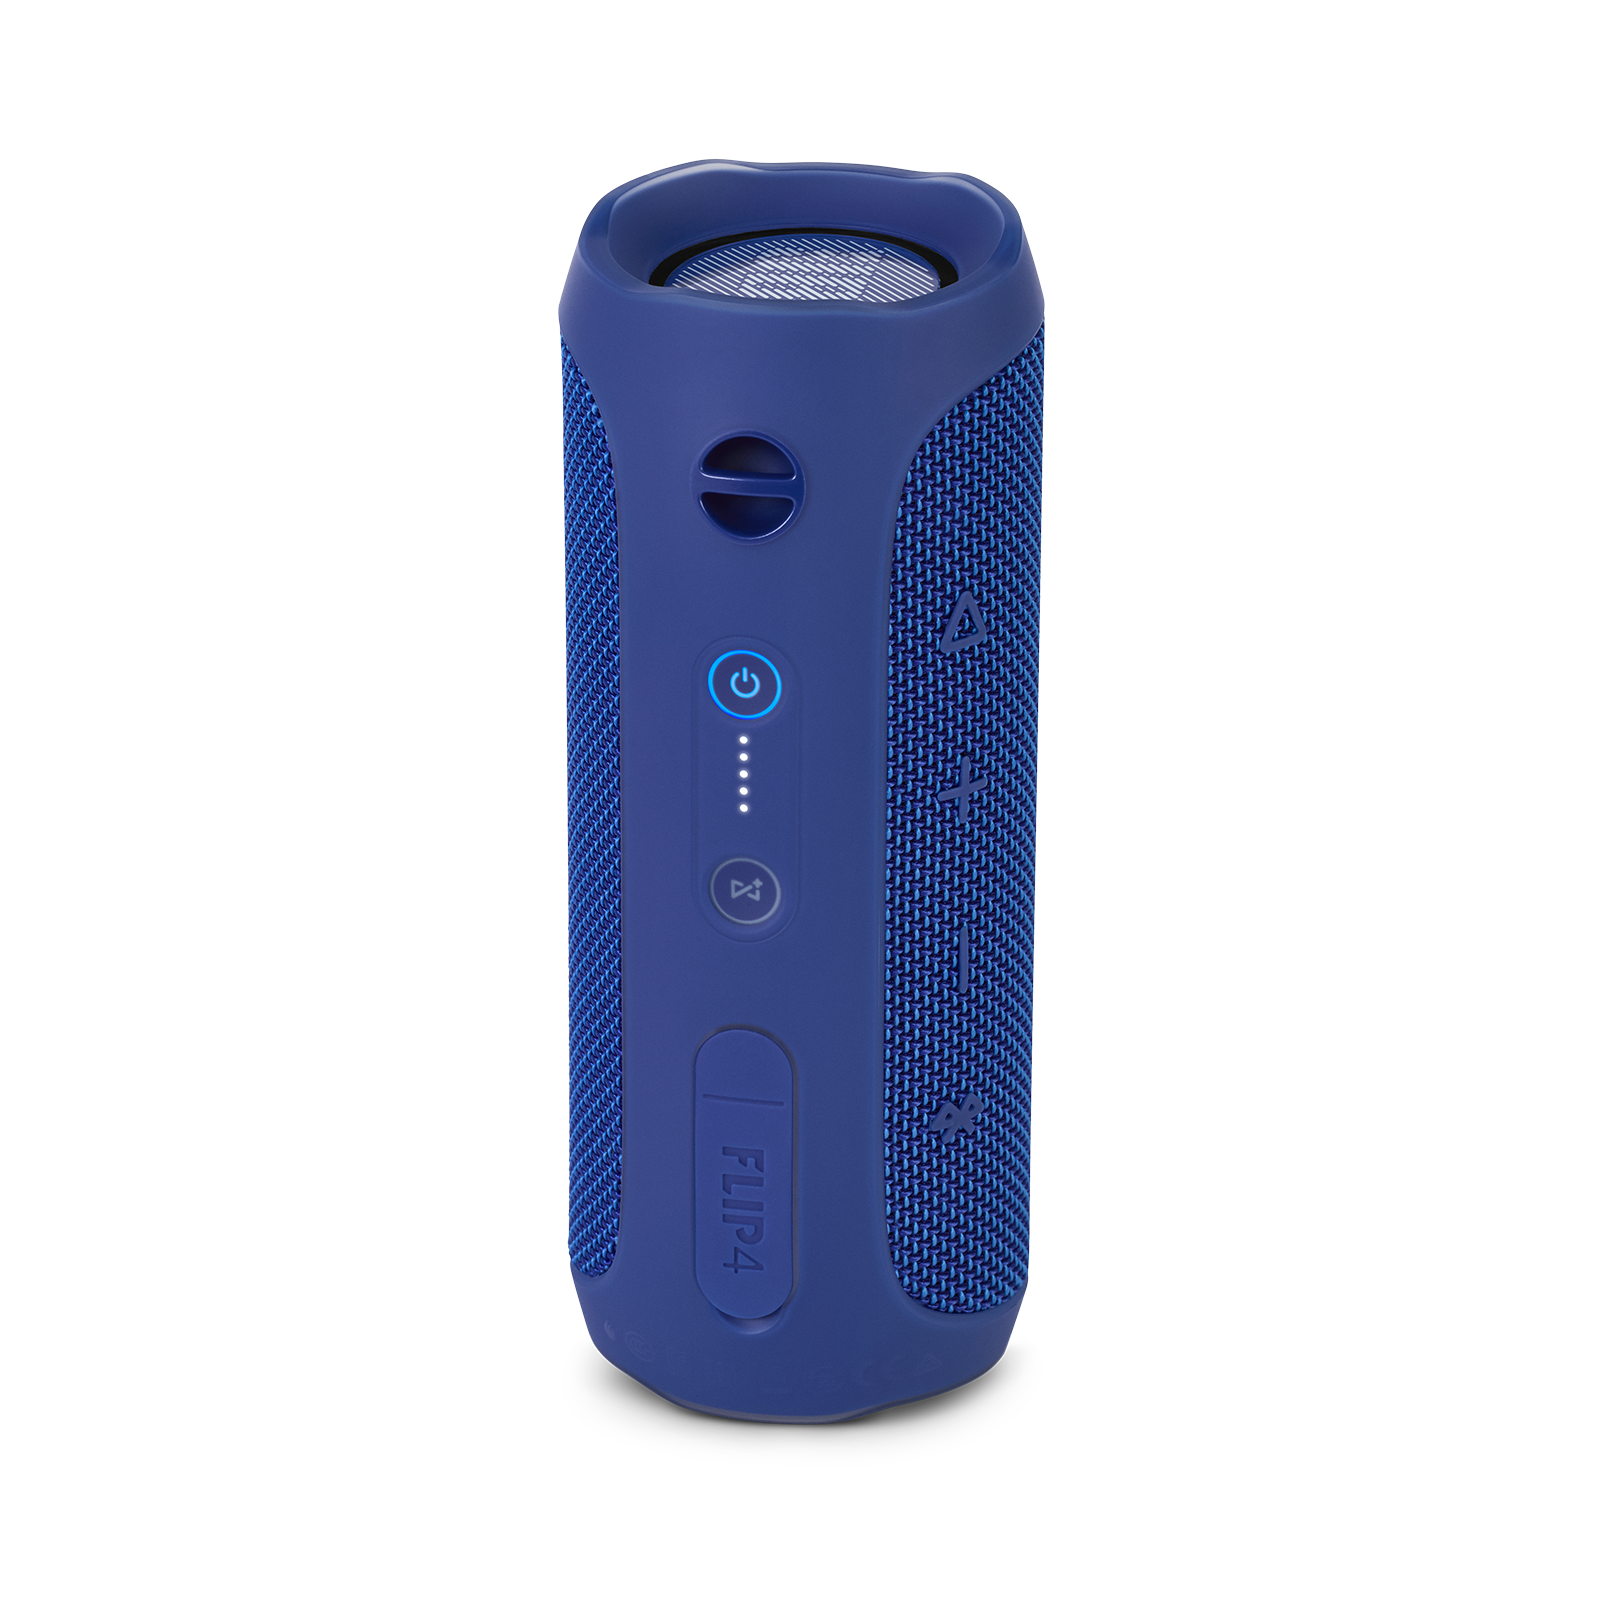 JBL Flip 4 - Blue - A full-featured waterproof portable Bluetooth speaker with surprisingly powerful sound. - Back